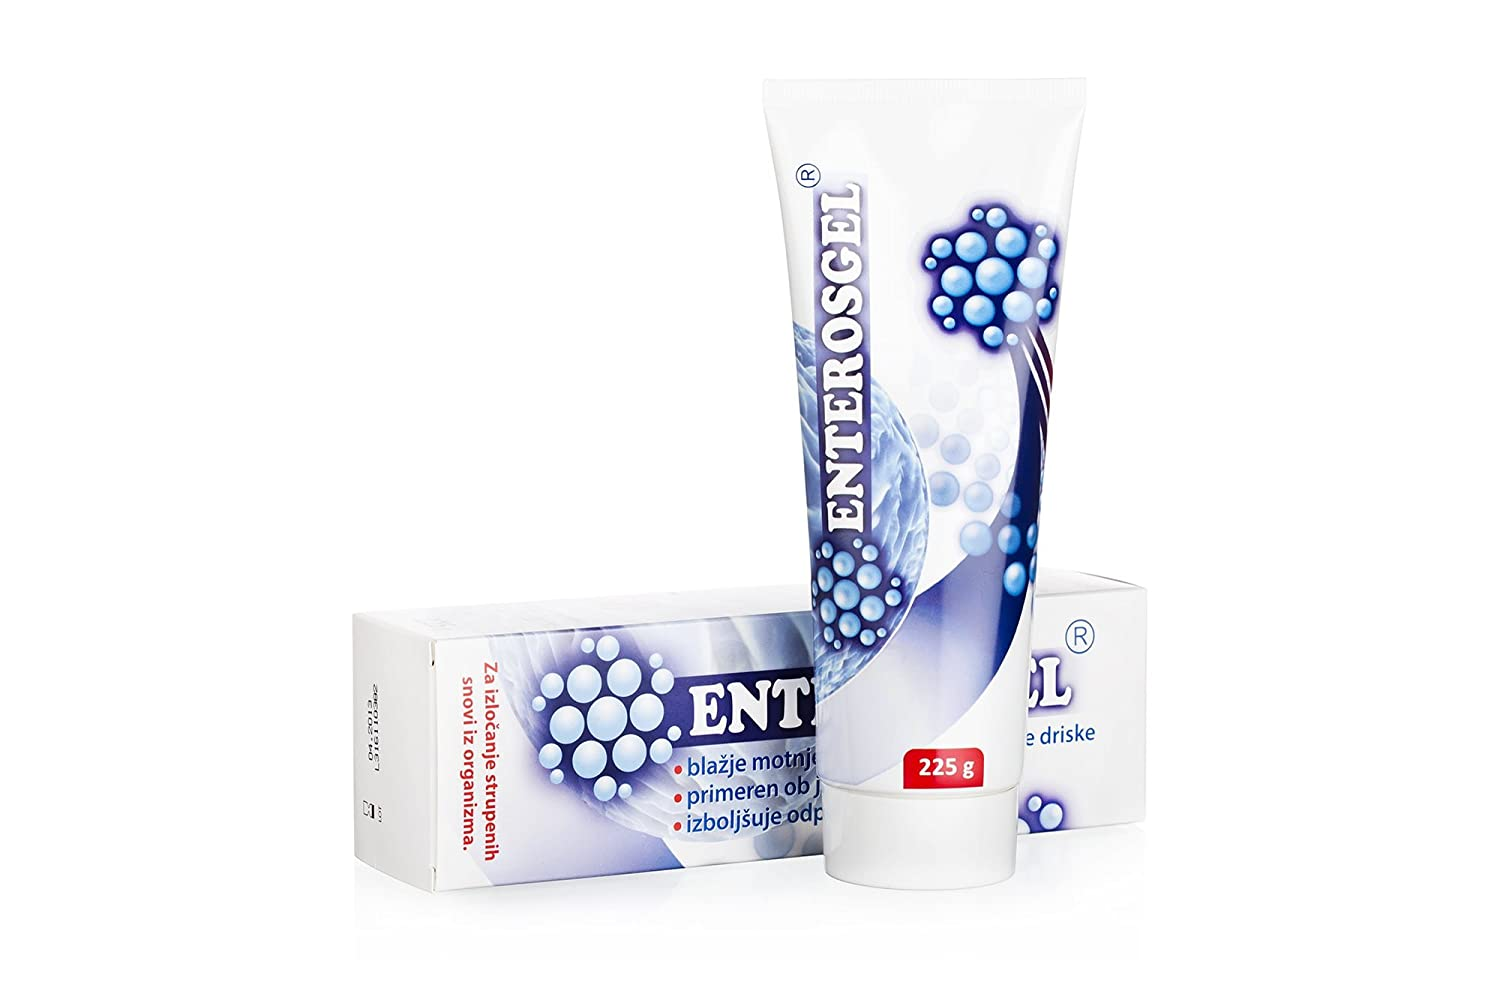 ENTEROSGEL Toxin Binding Gel For Cleansing The Gut 225G Pack Of 5